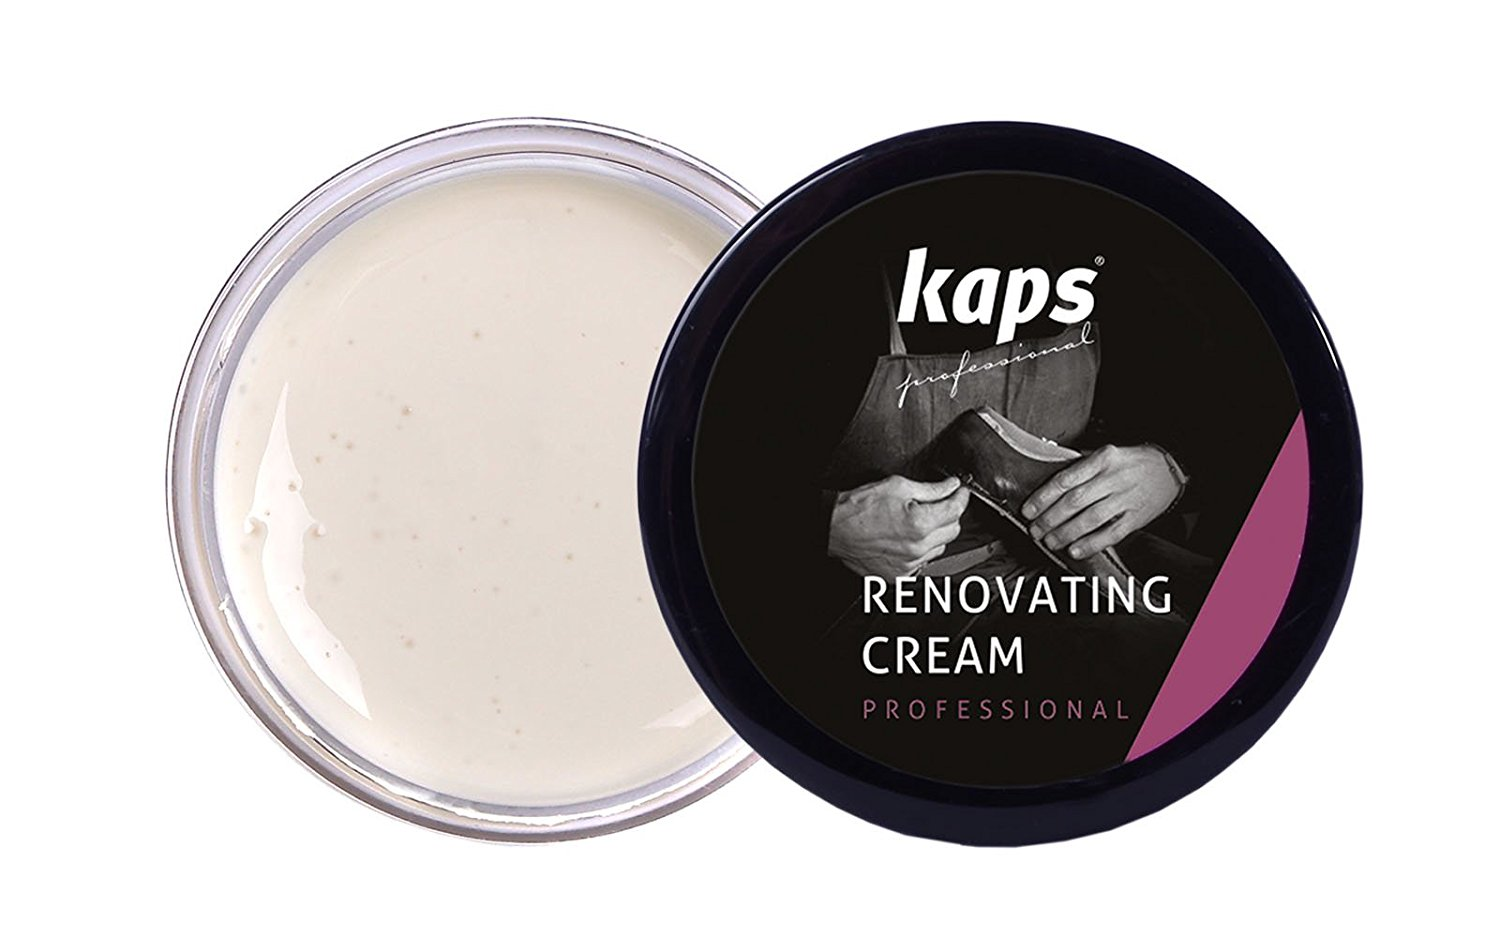 Восстанавливающий крем для обуви Kaps Renovating Cream25 ml